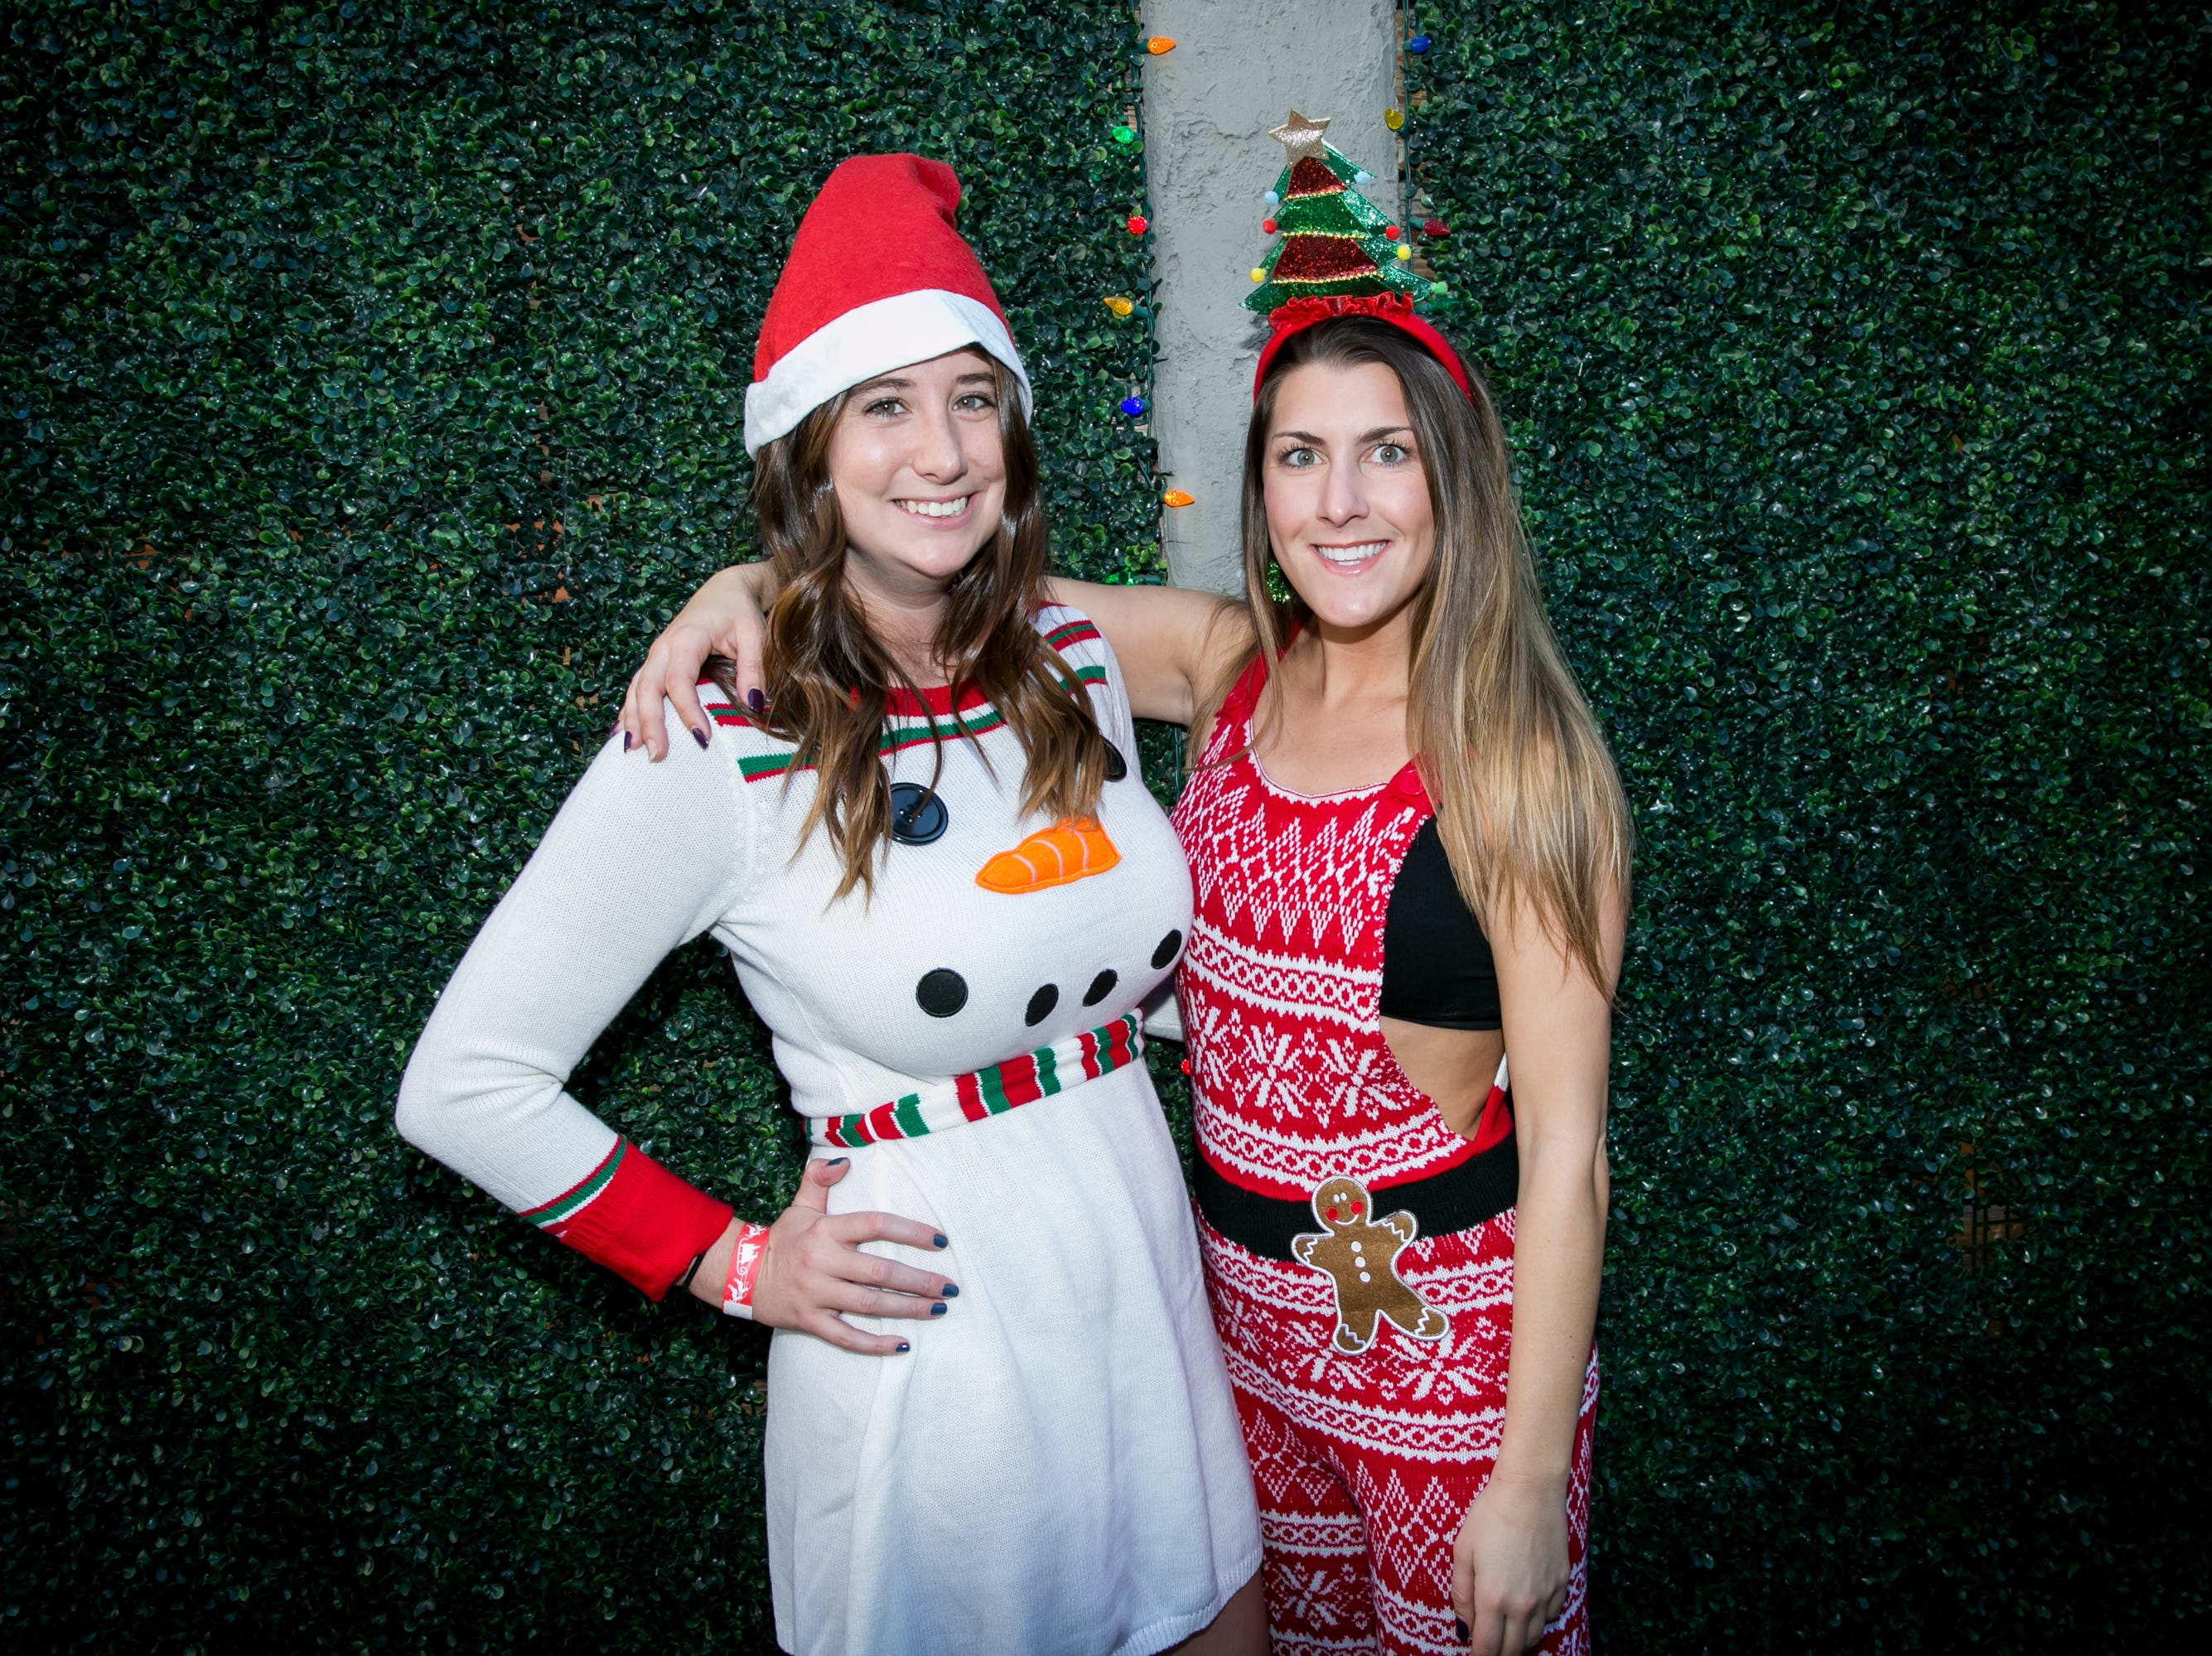 Her Frosty the Snowman dress was adorable during the Scottsdale Santa Crawl at Wasted Grain on Saturday, December 8, 2018.